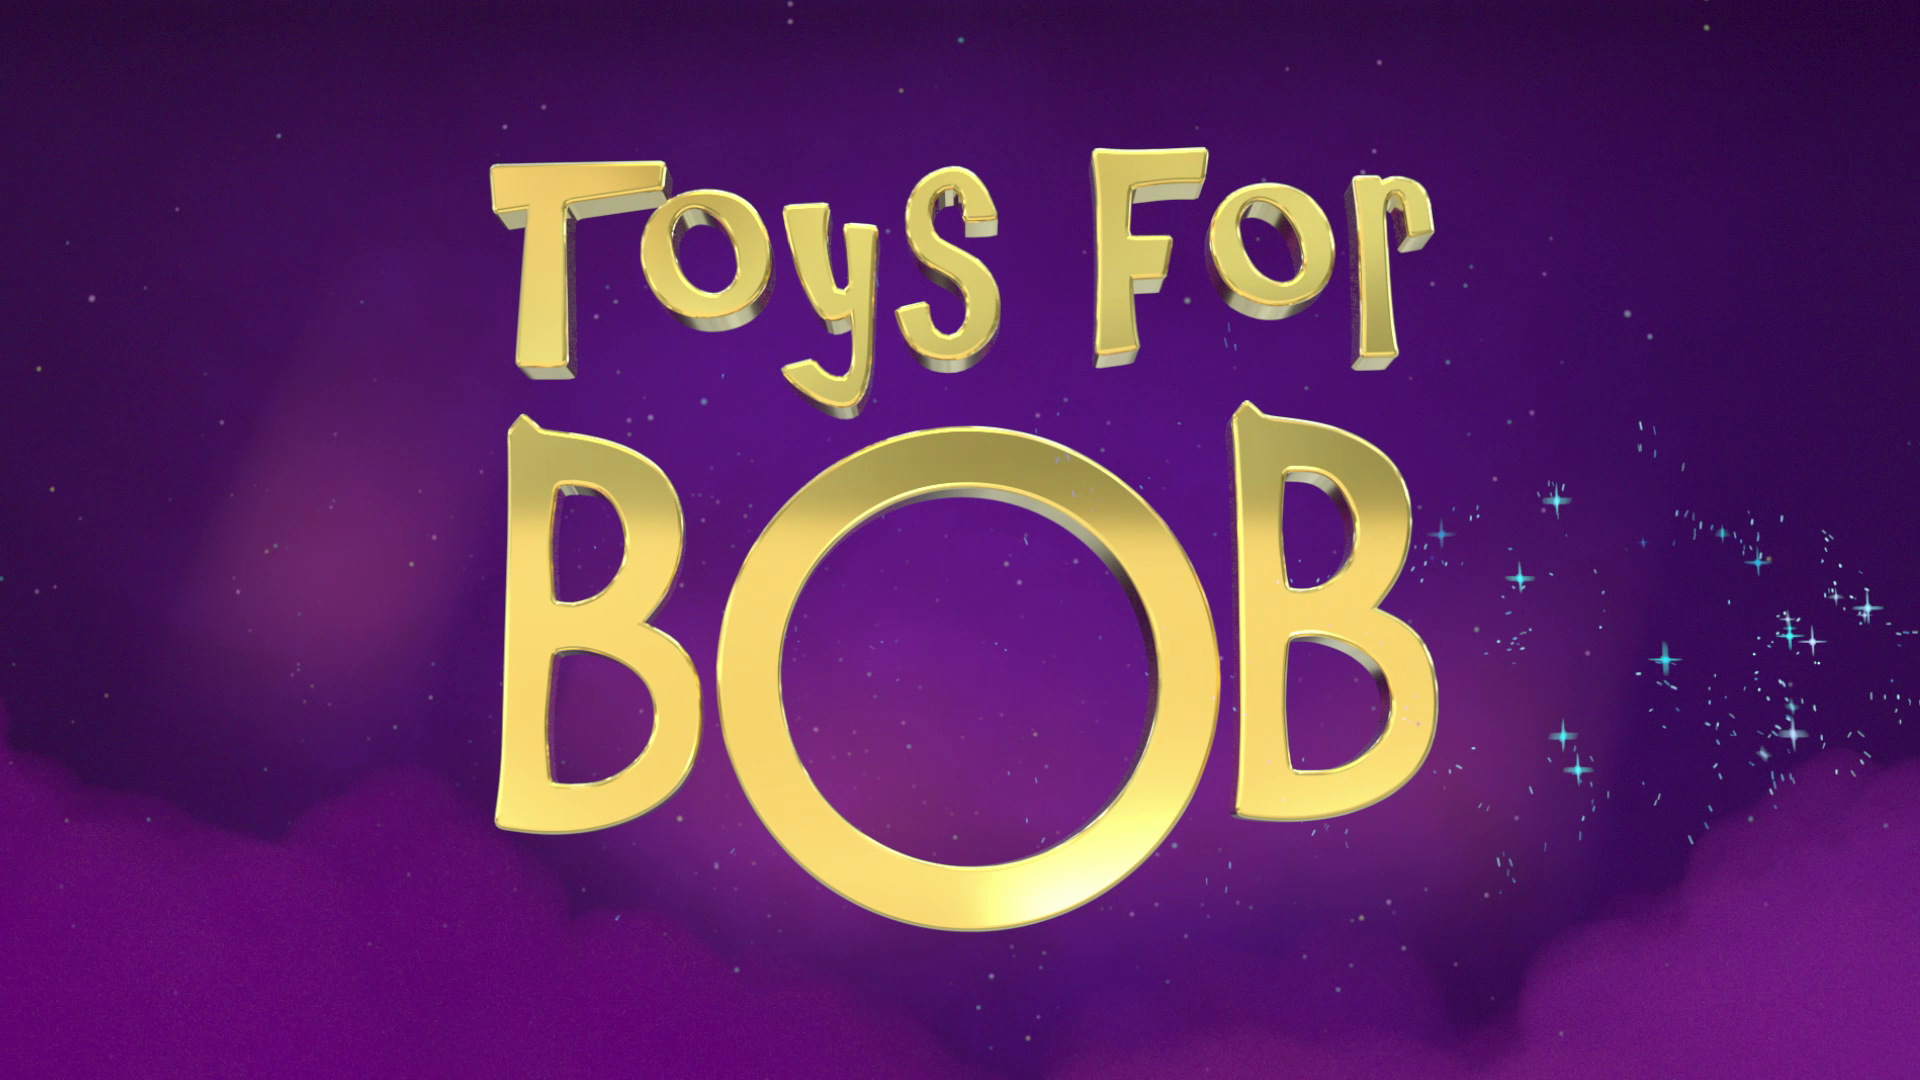 Toys for Bob (2018) [High gamma]